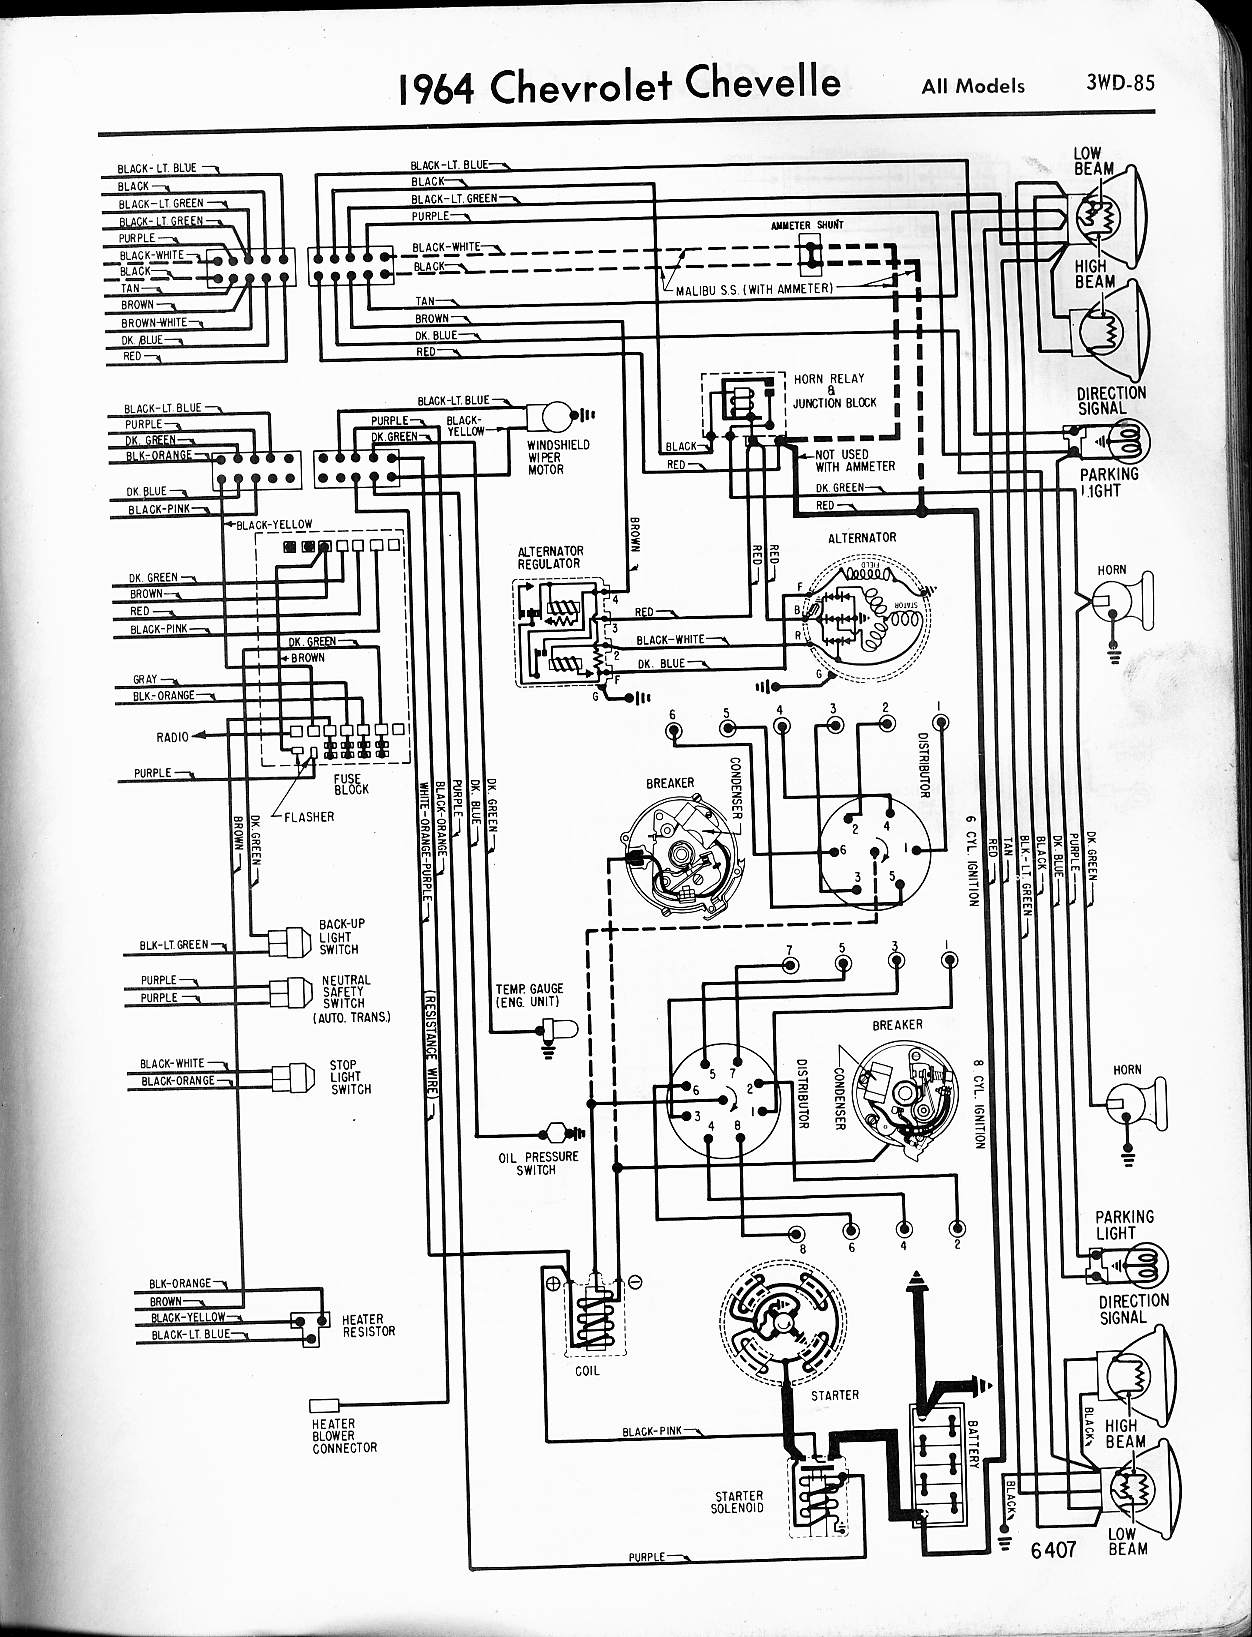 Outstanding Wiring Harness 1964 El Camino Basic Electronics Wiring Diagram Zipur Mohammedshrine Wiring Diagrams Zipurmohammedshrineorg